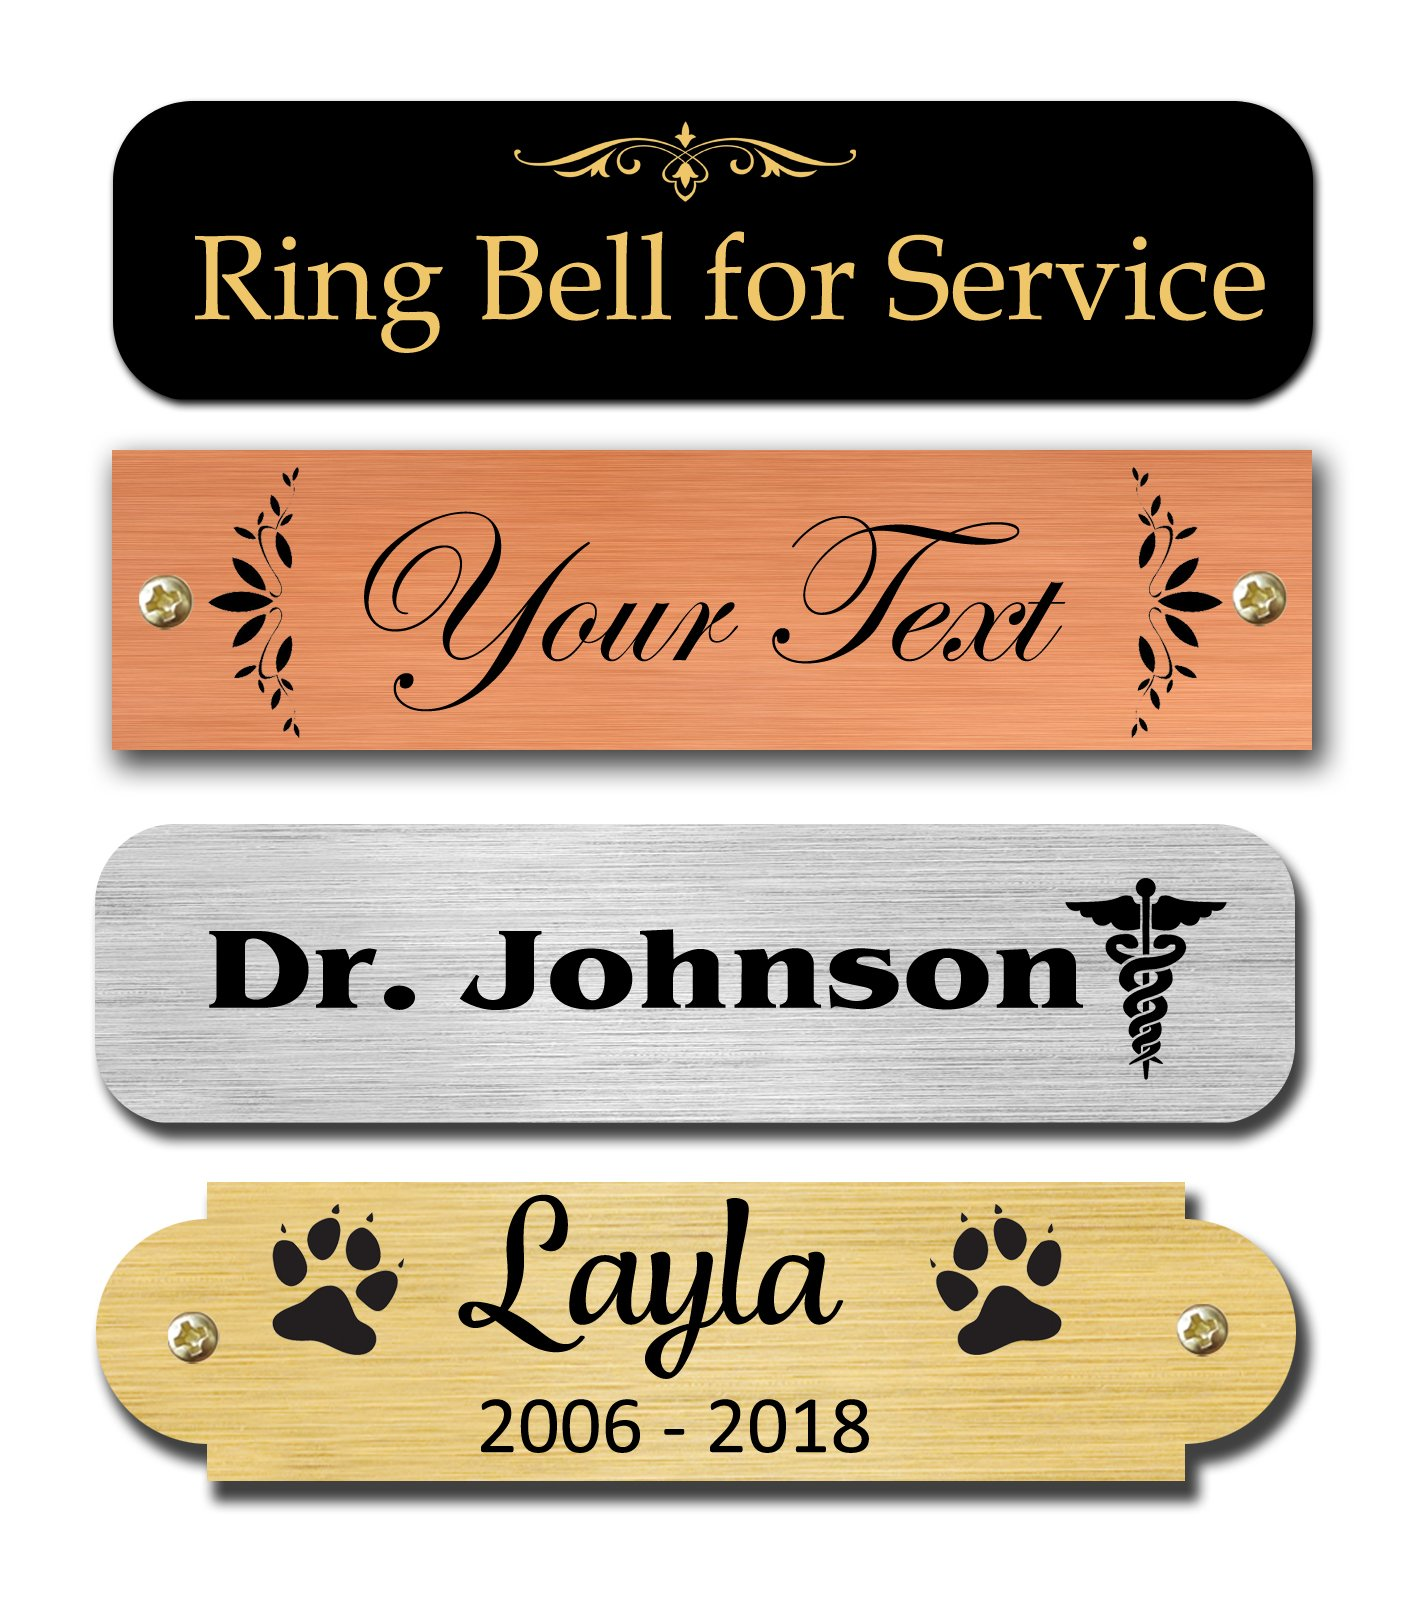 0.5'' H x 2'' W, Brass Nameplates, Metal Plate, Personalized, Custom Engraved Tag, Name Plaque, Square Or Round Corners Made in USA (Satin Silver)